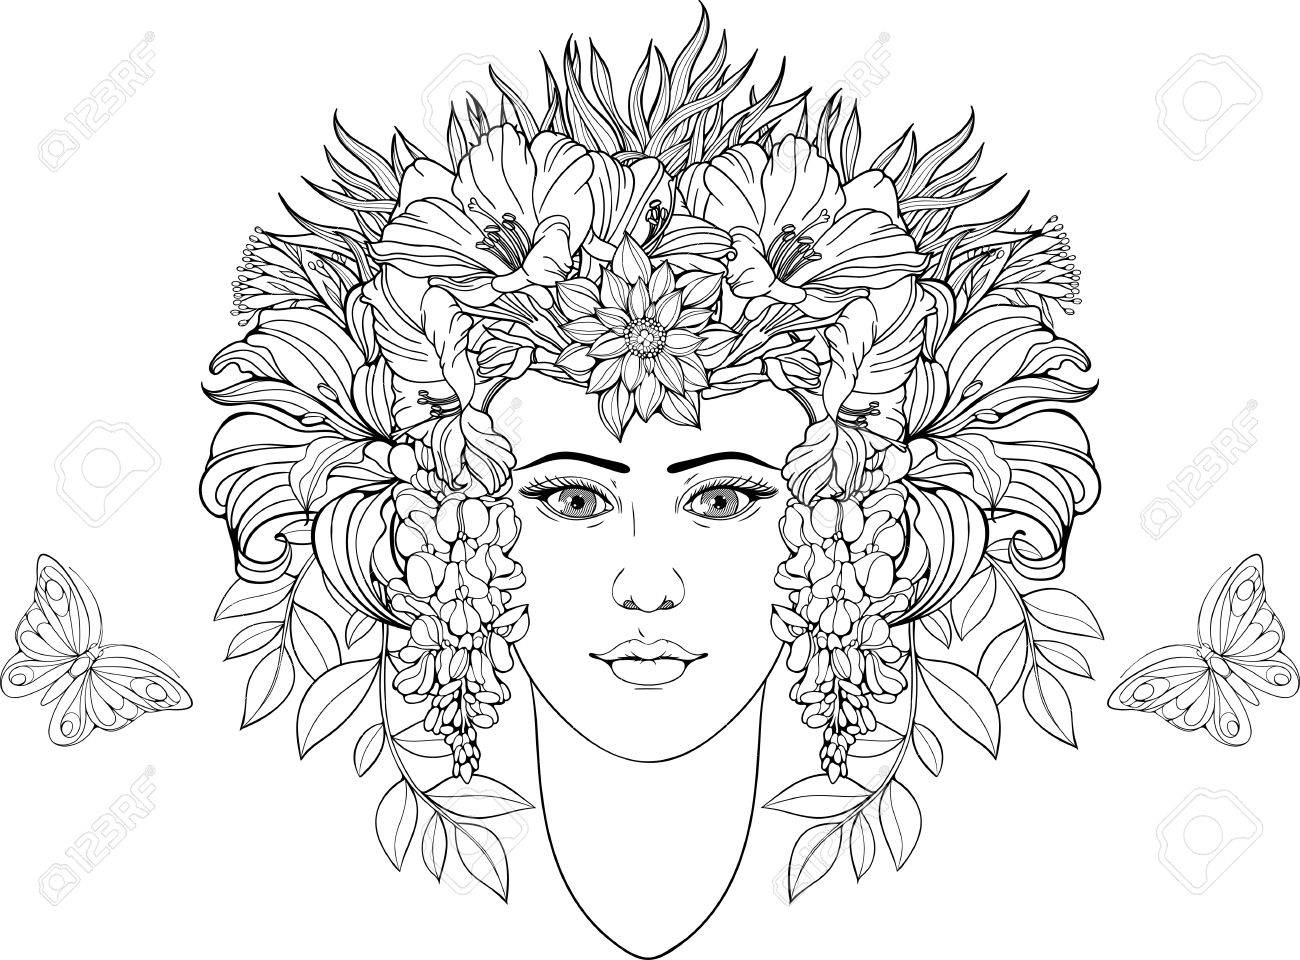 Coloring Page Of Portrait Of Girl With Flowers In Hair Royalty Free ...